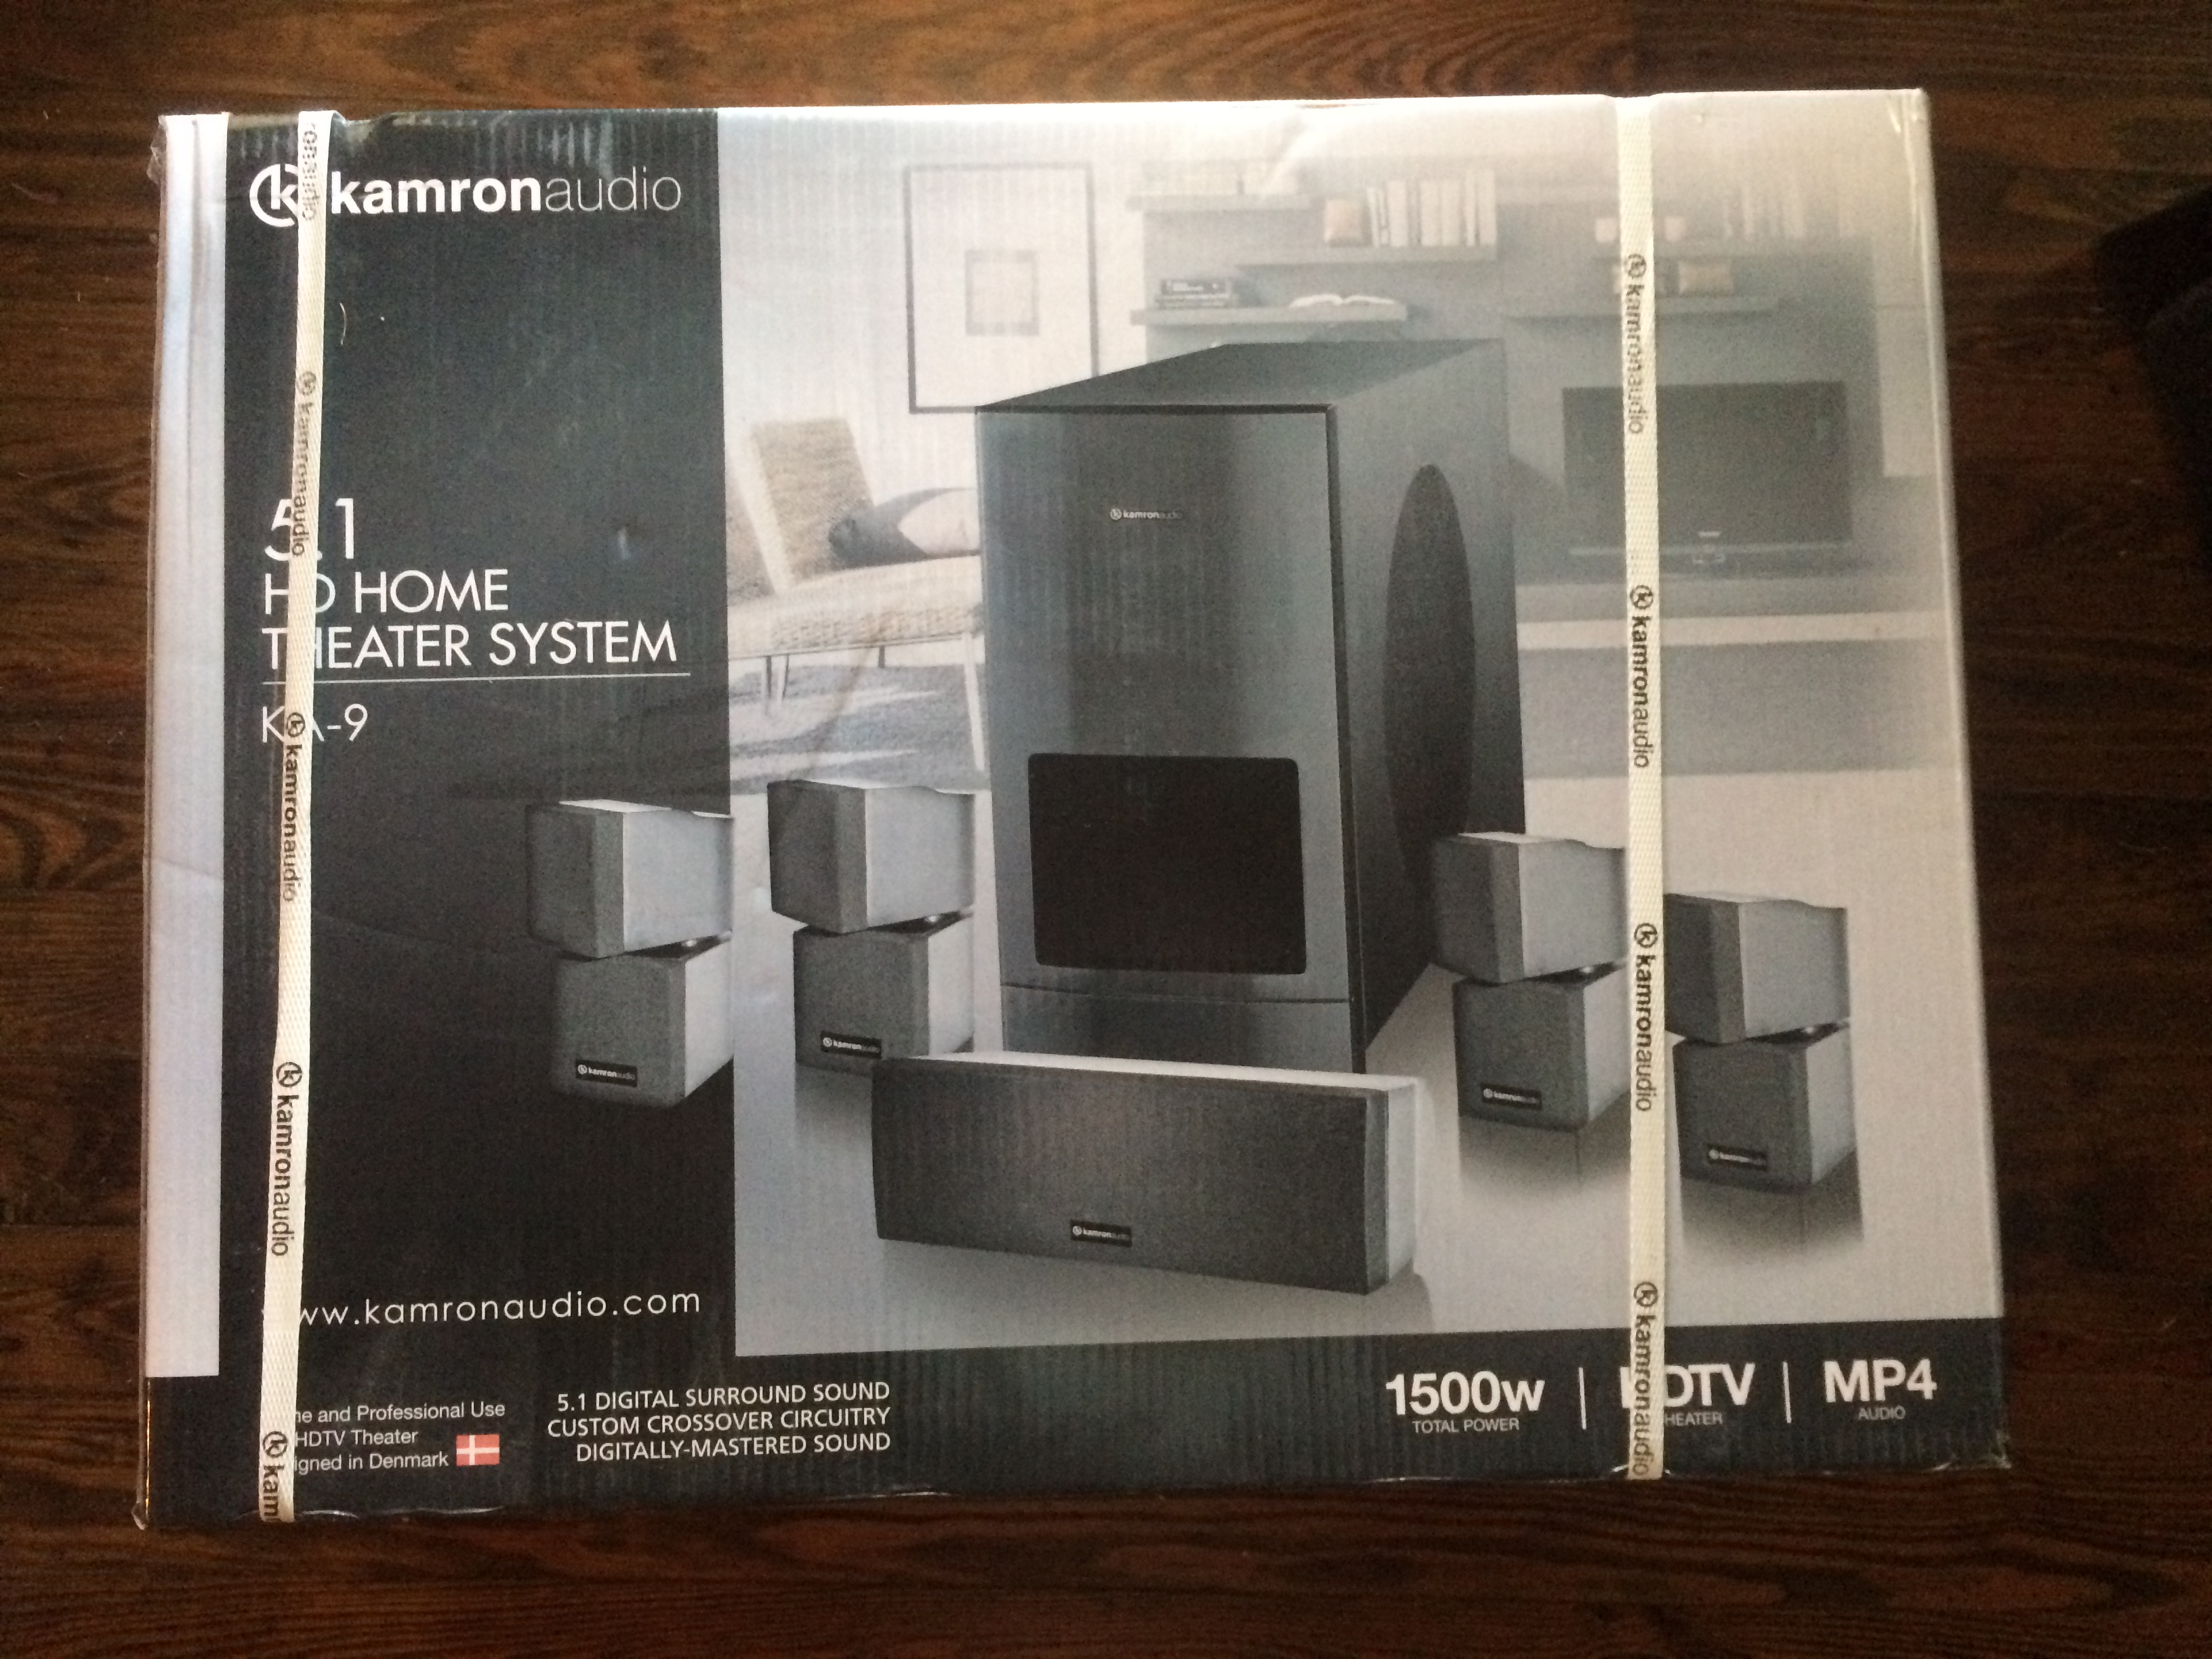 NEW IN BOX Kamron Audio KA-9 Home Theater System